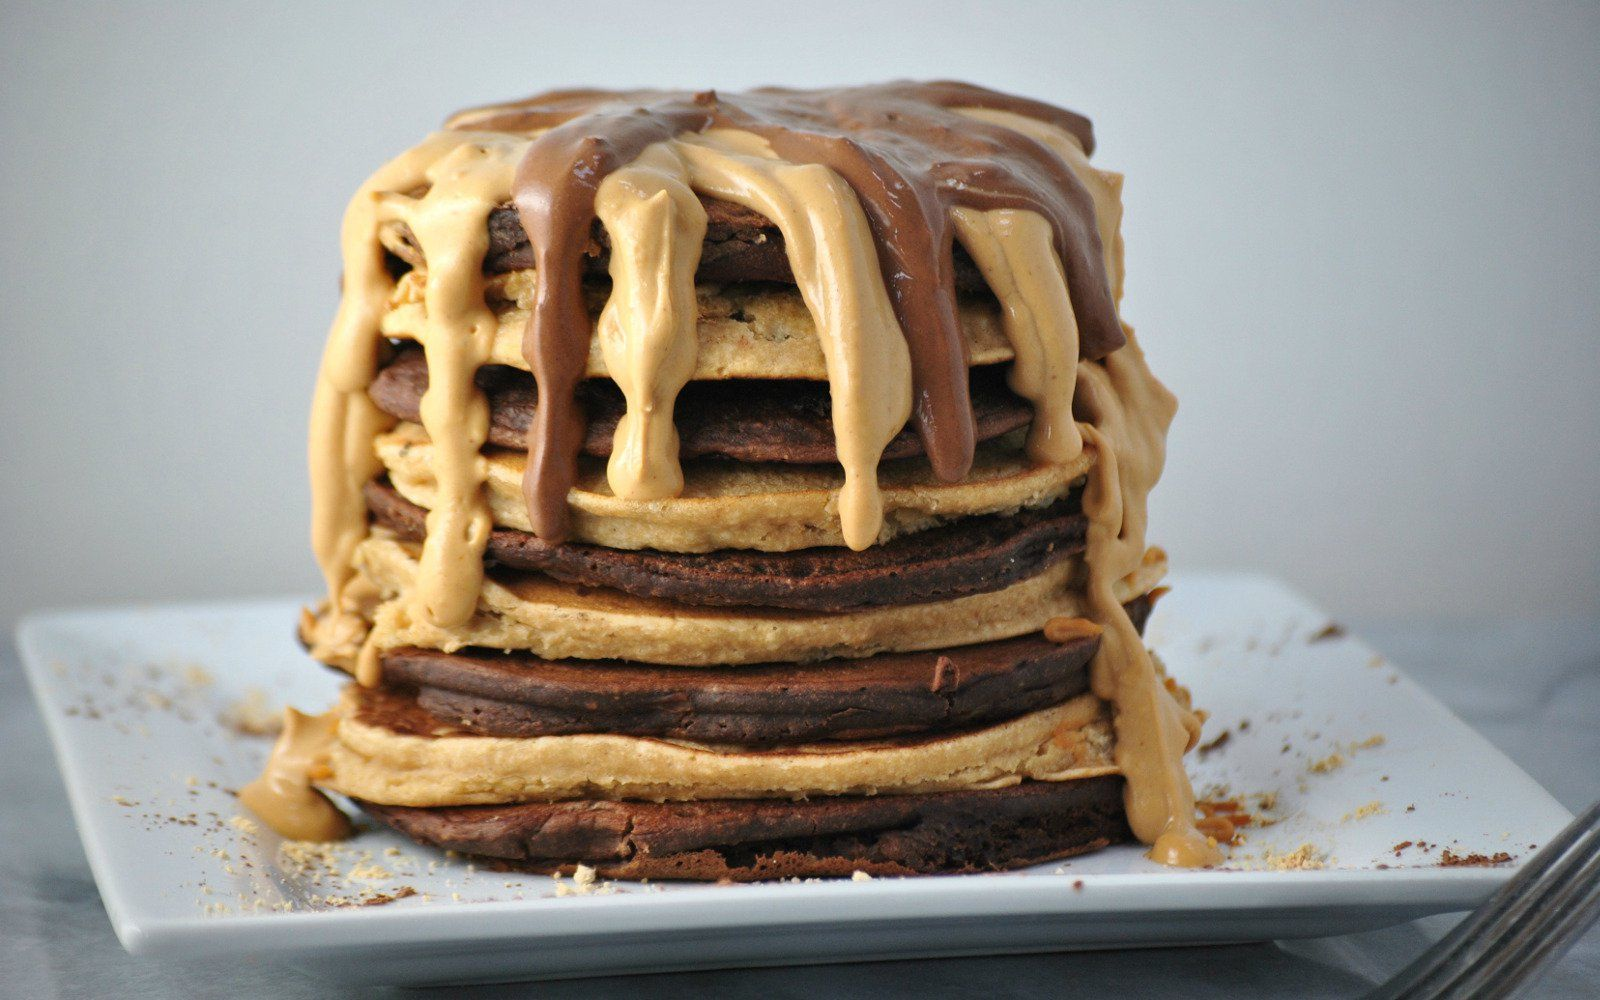 If you have an organic affinity for all things peanut butter, then these are the pancakes for you.